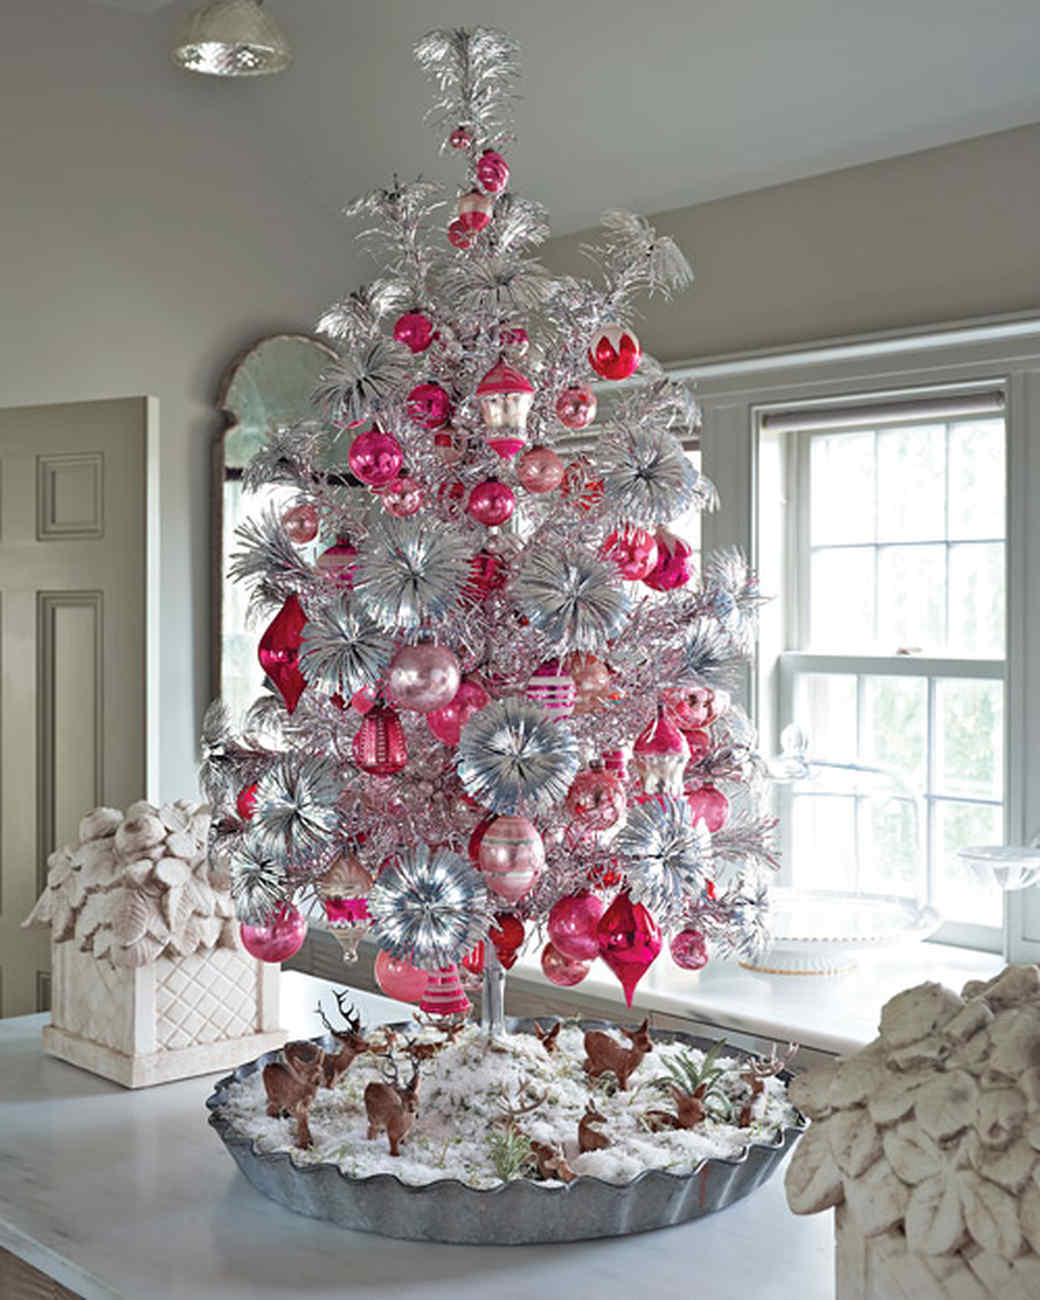 28 creative christmas tree decorating ideas martha stewart - Images Of White Christmas Trees Decorated